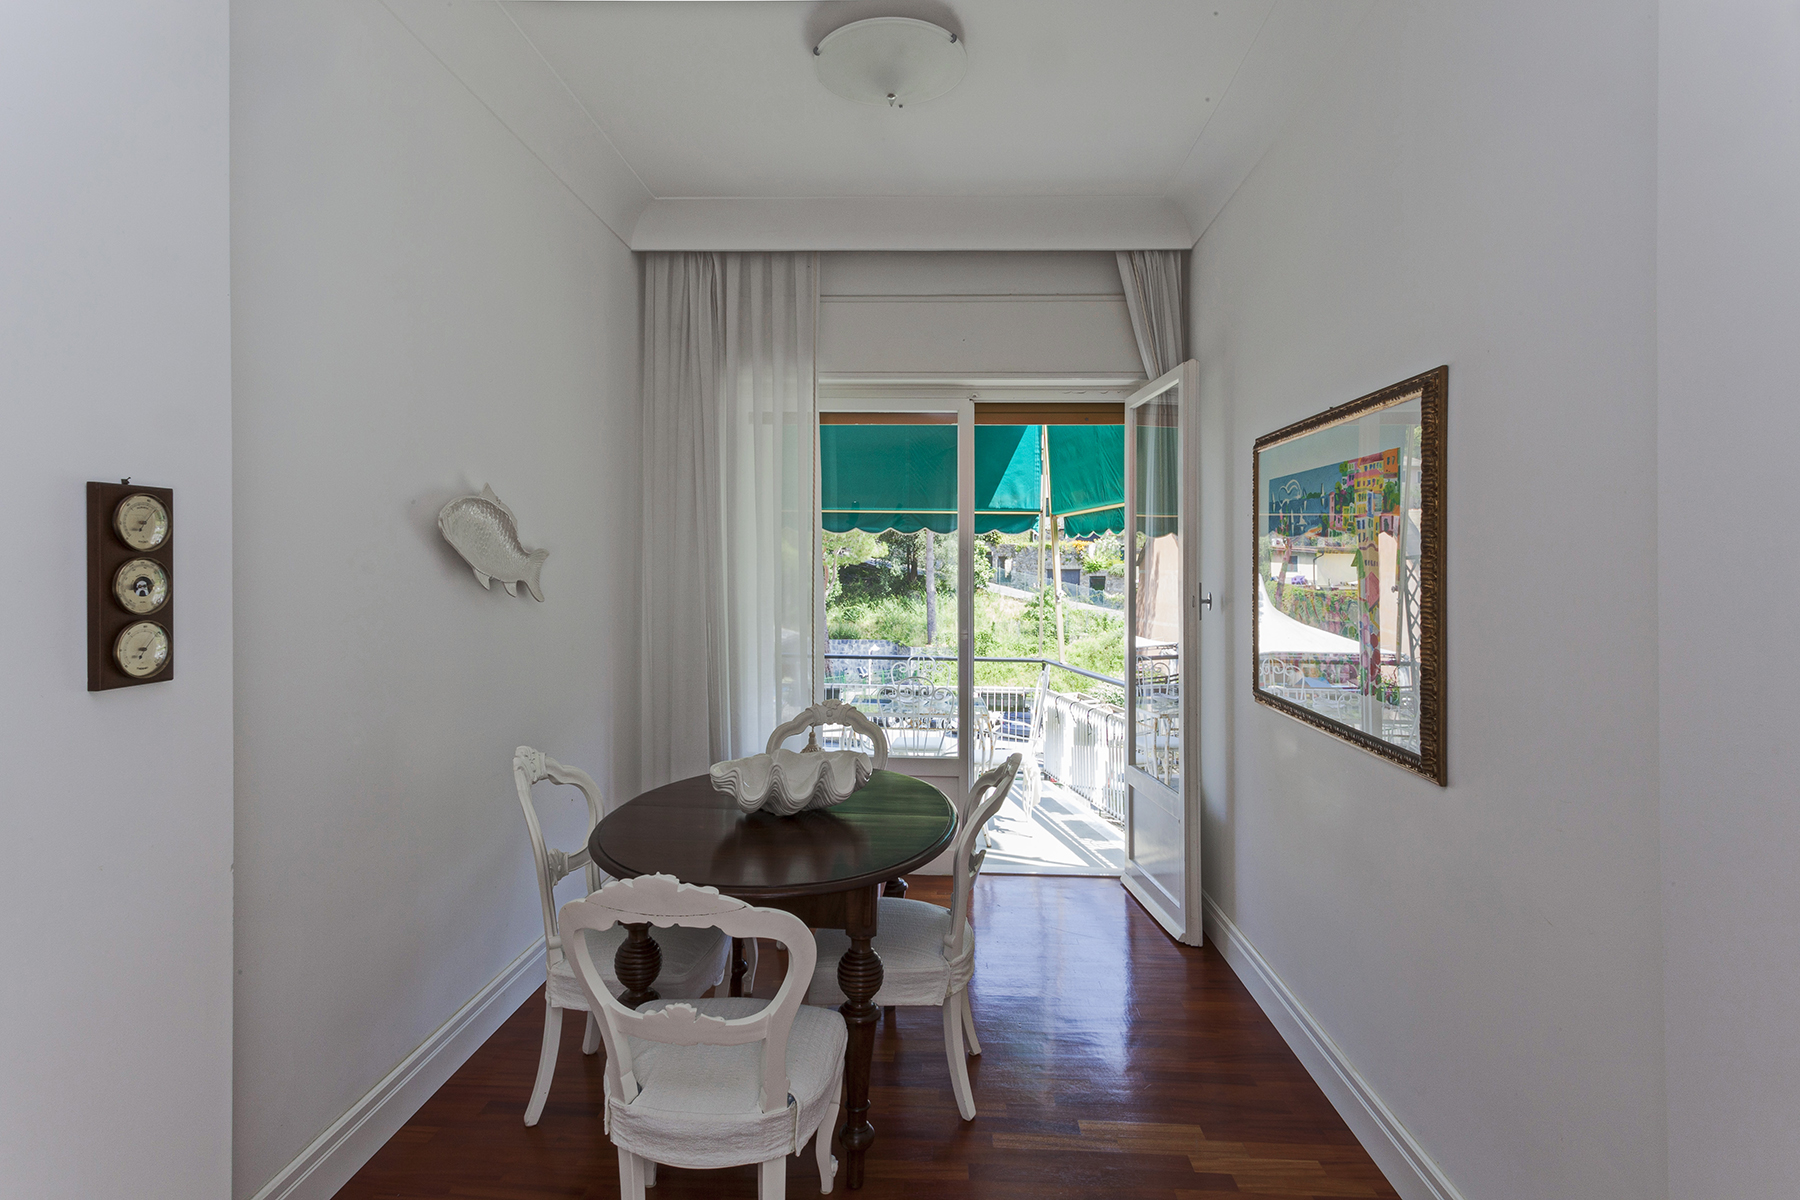 Additional photo for property listing at Elegant apartment recently renovated in the heart of Santa Margherita Via Madonnetta Santa Margherita Ligure, Genoa 16038 Italy